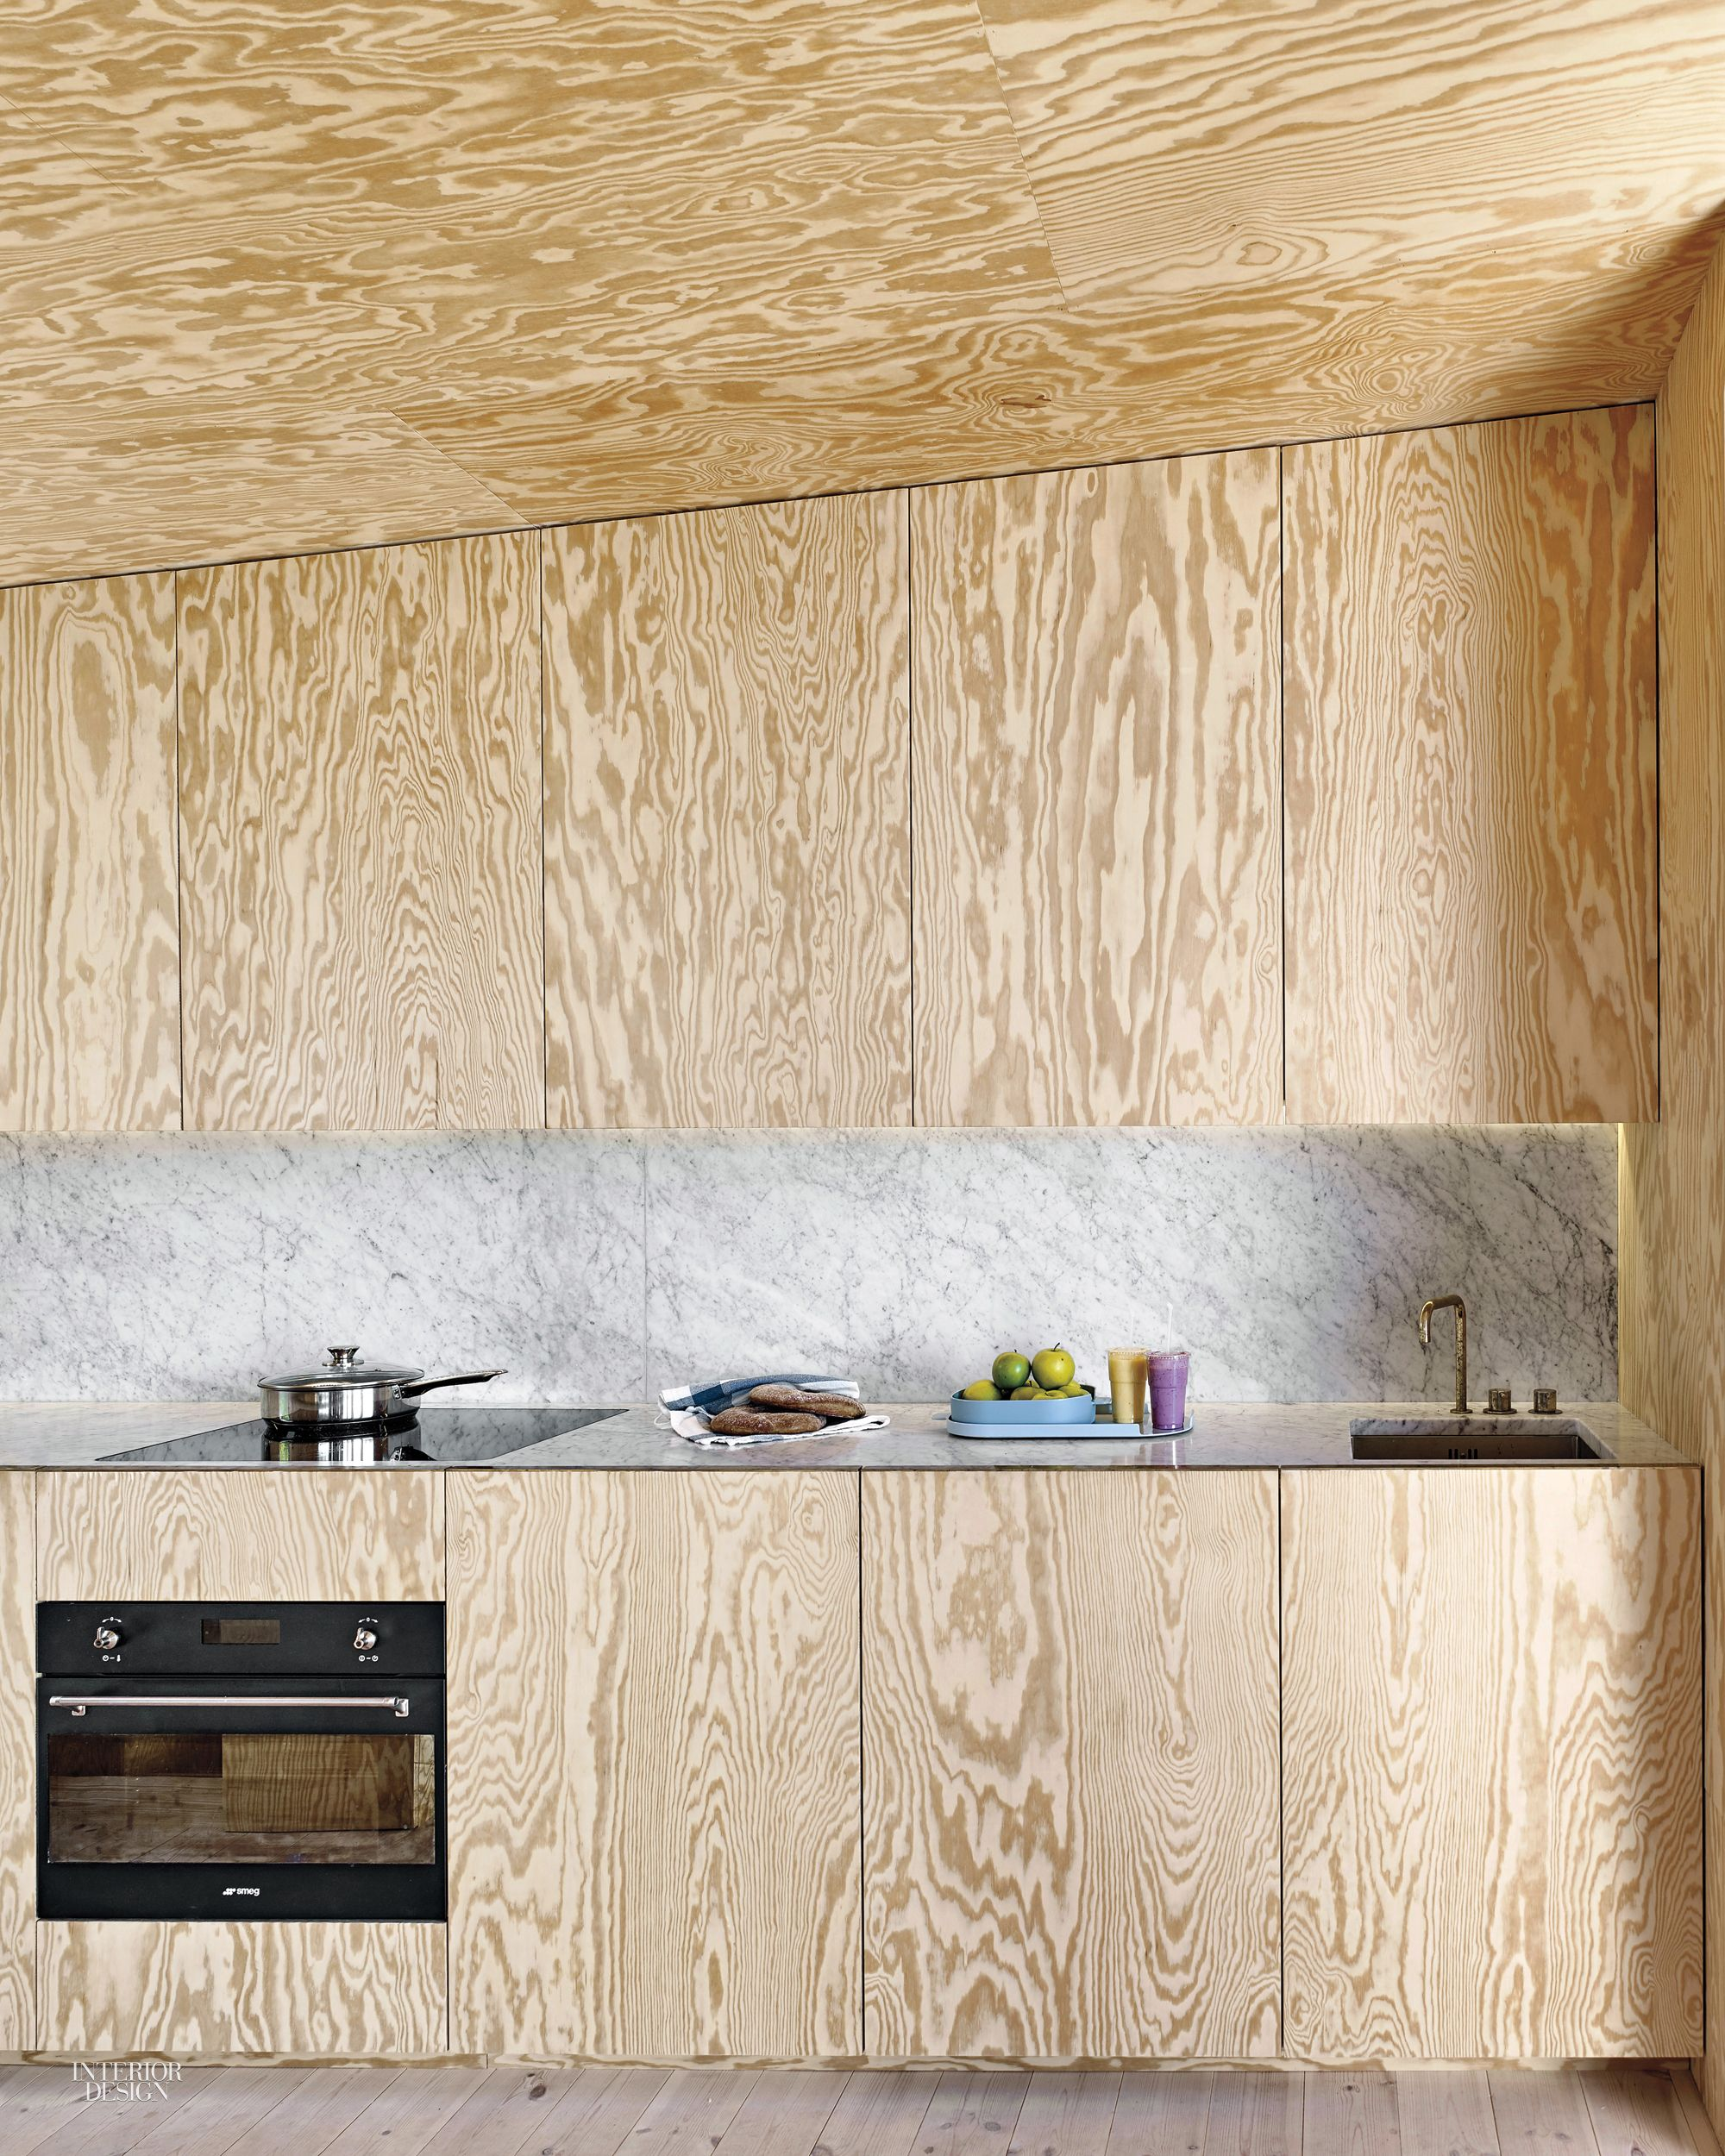 Diy Plywood Kitchen Cabinet Doors: The Success Of Andreas Martin-Löf's House Near Stockholm